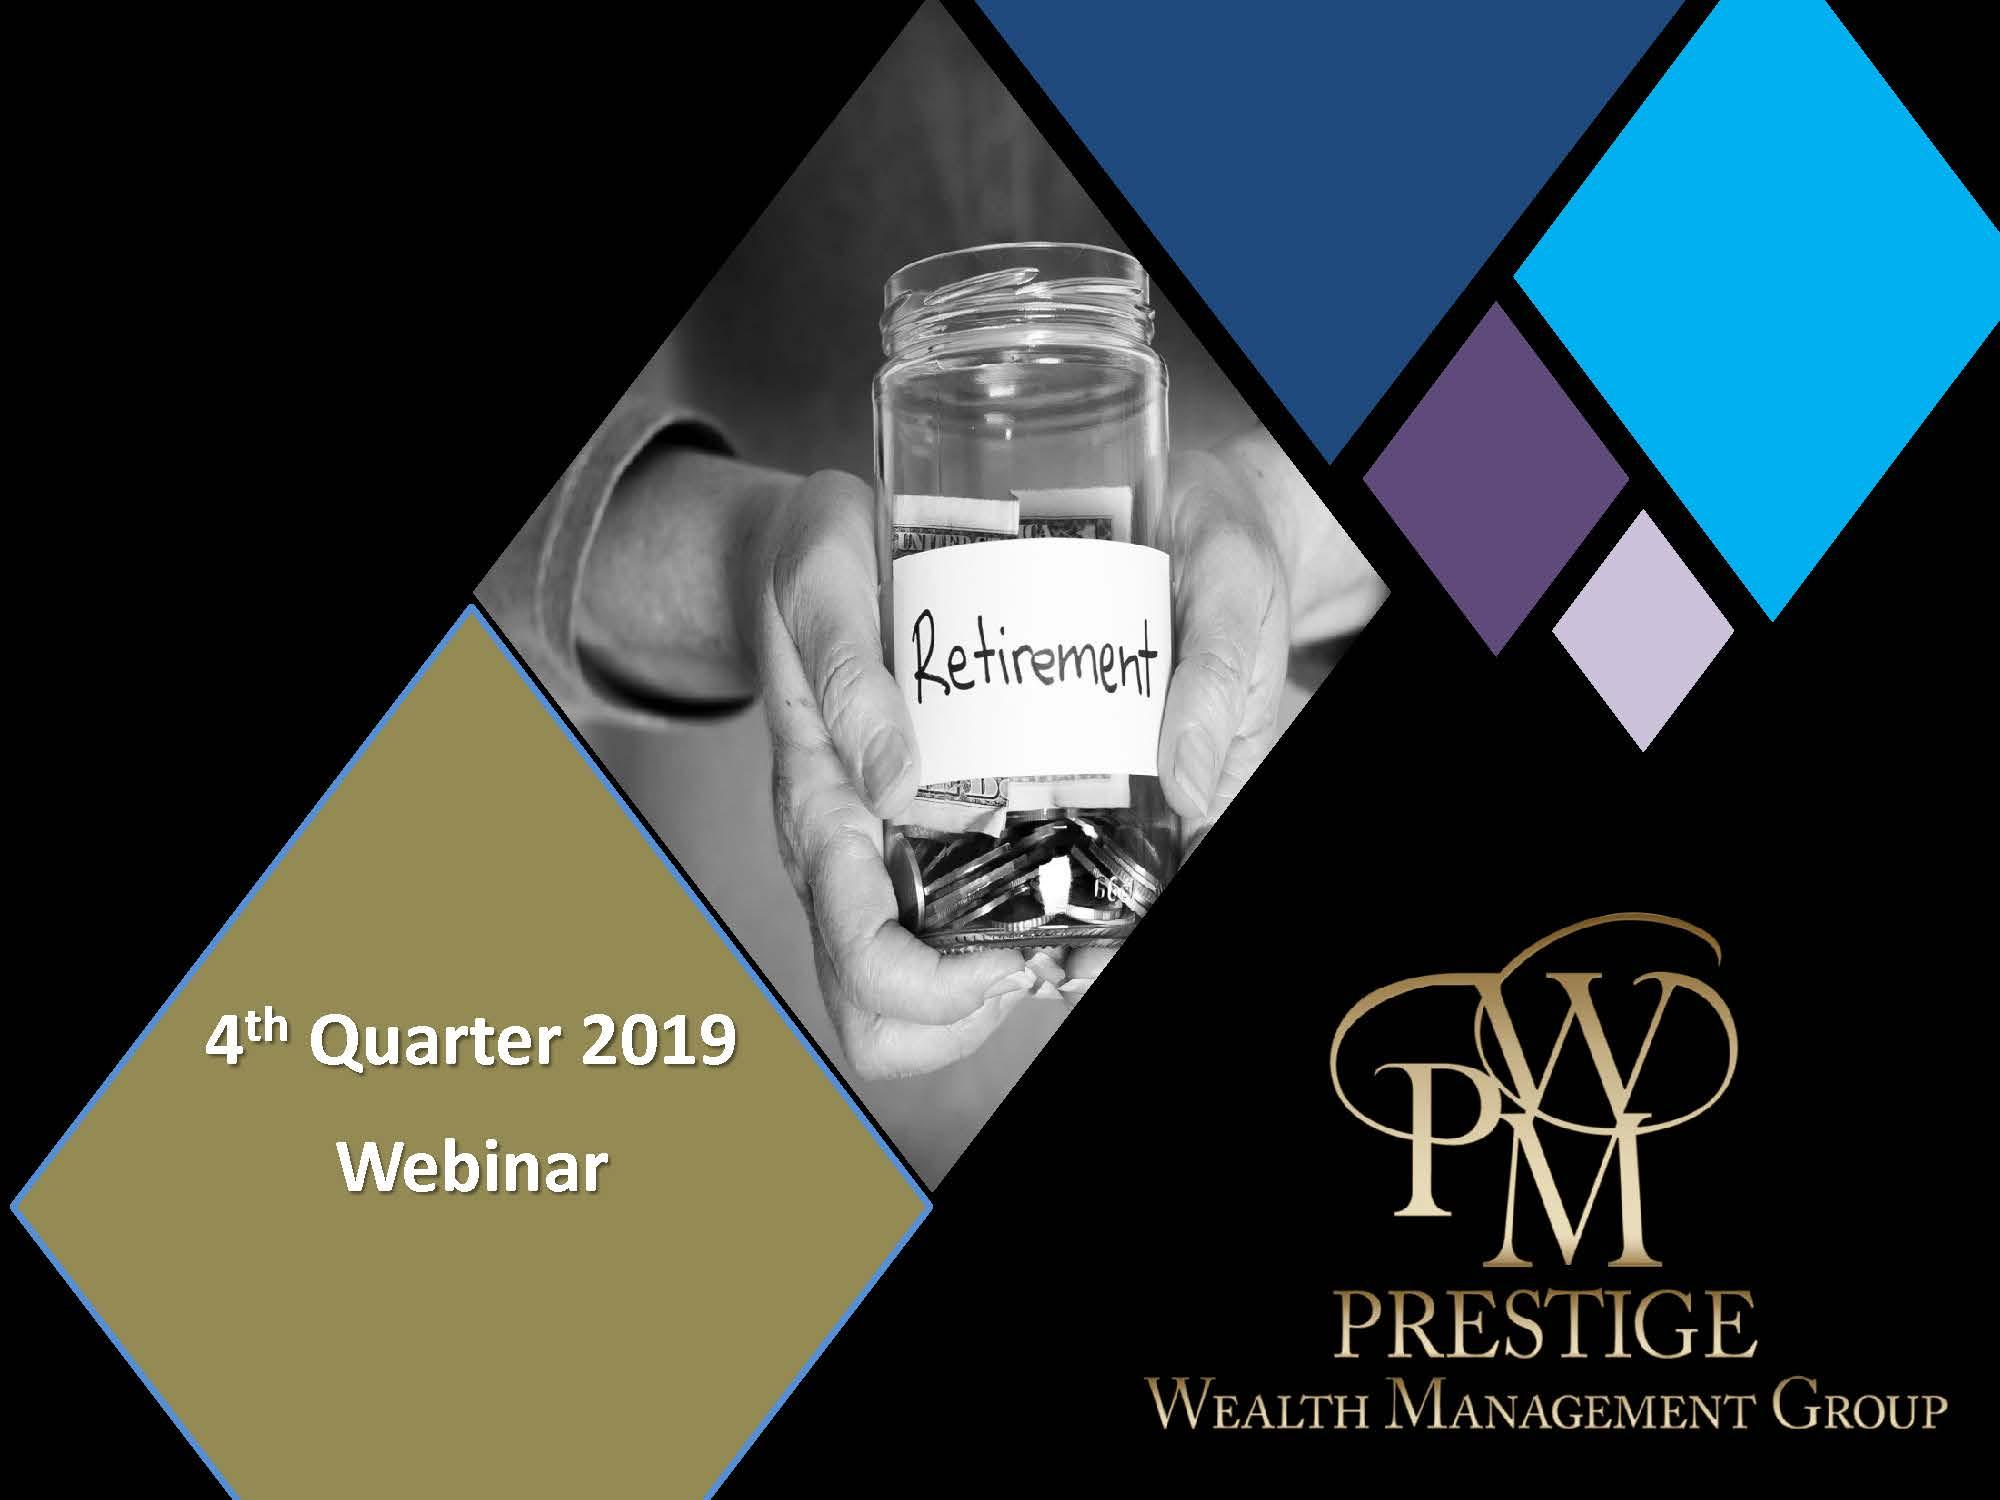 Webcast - 4th Quarter 2019 Thumbnail